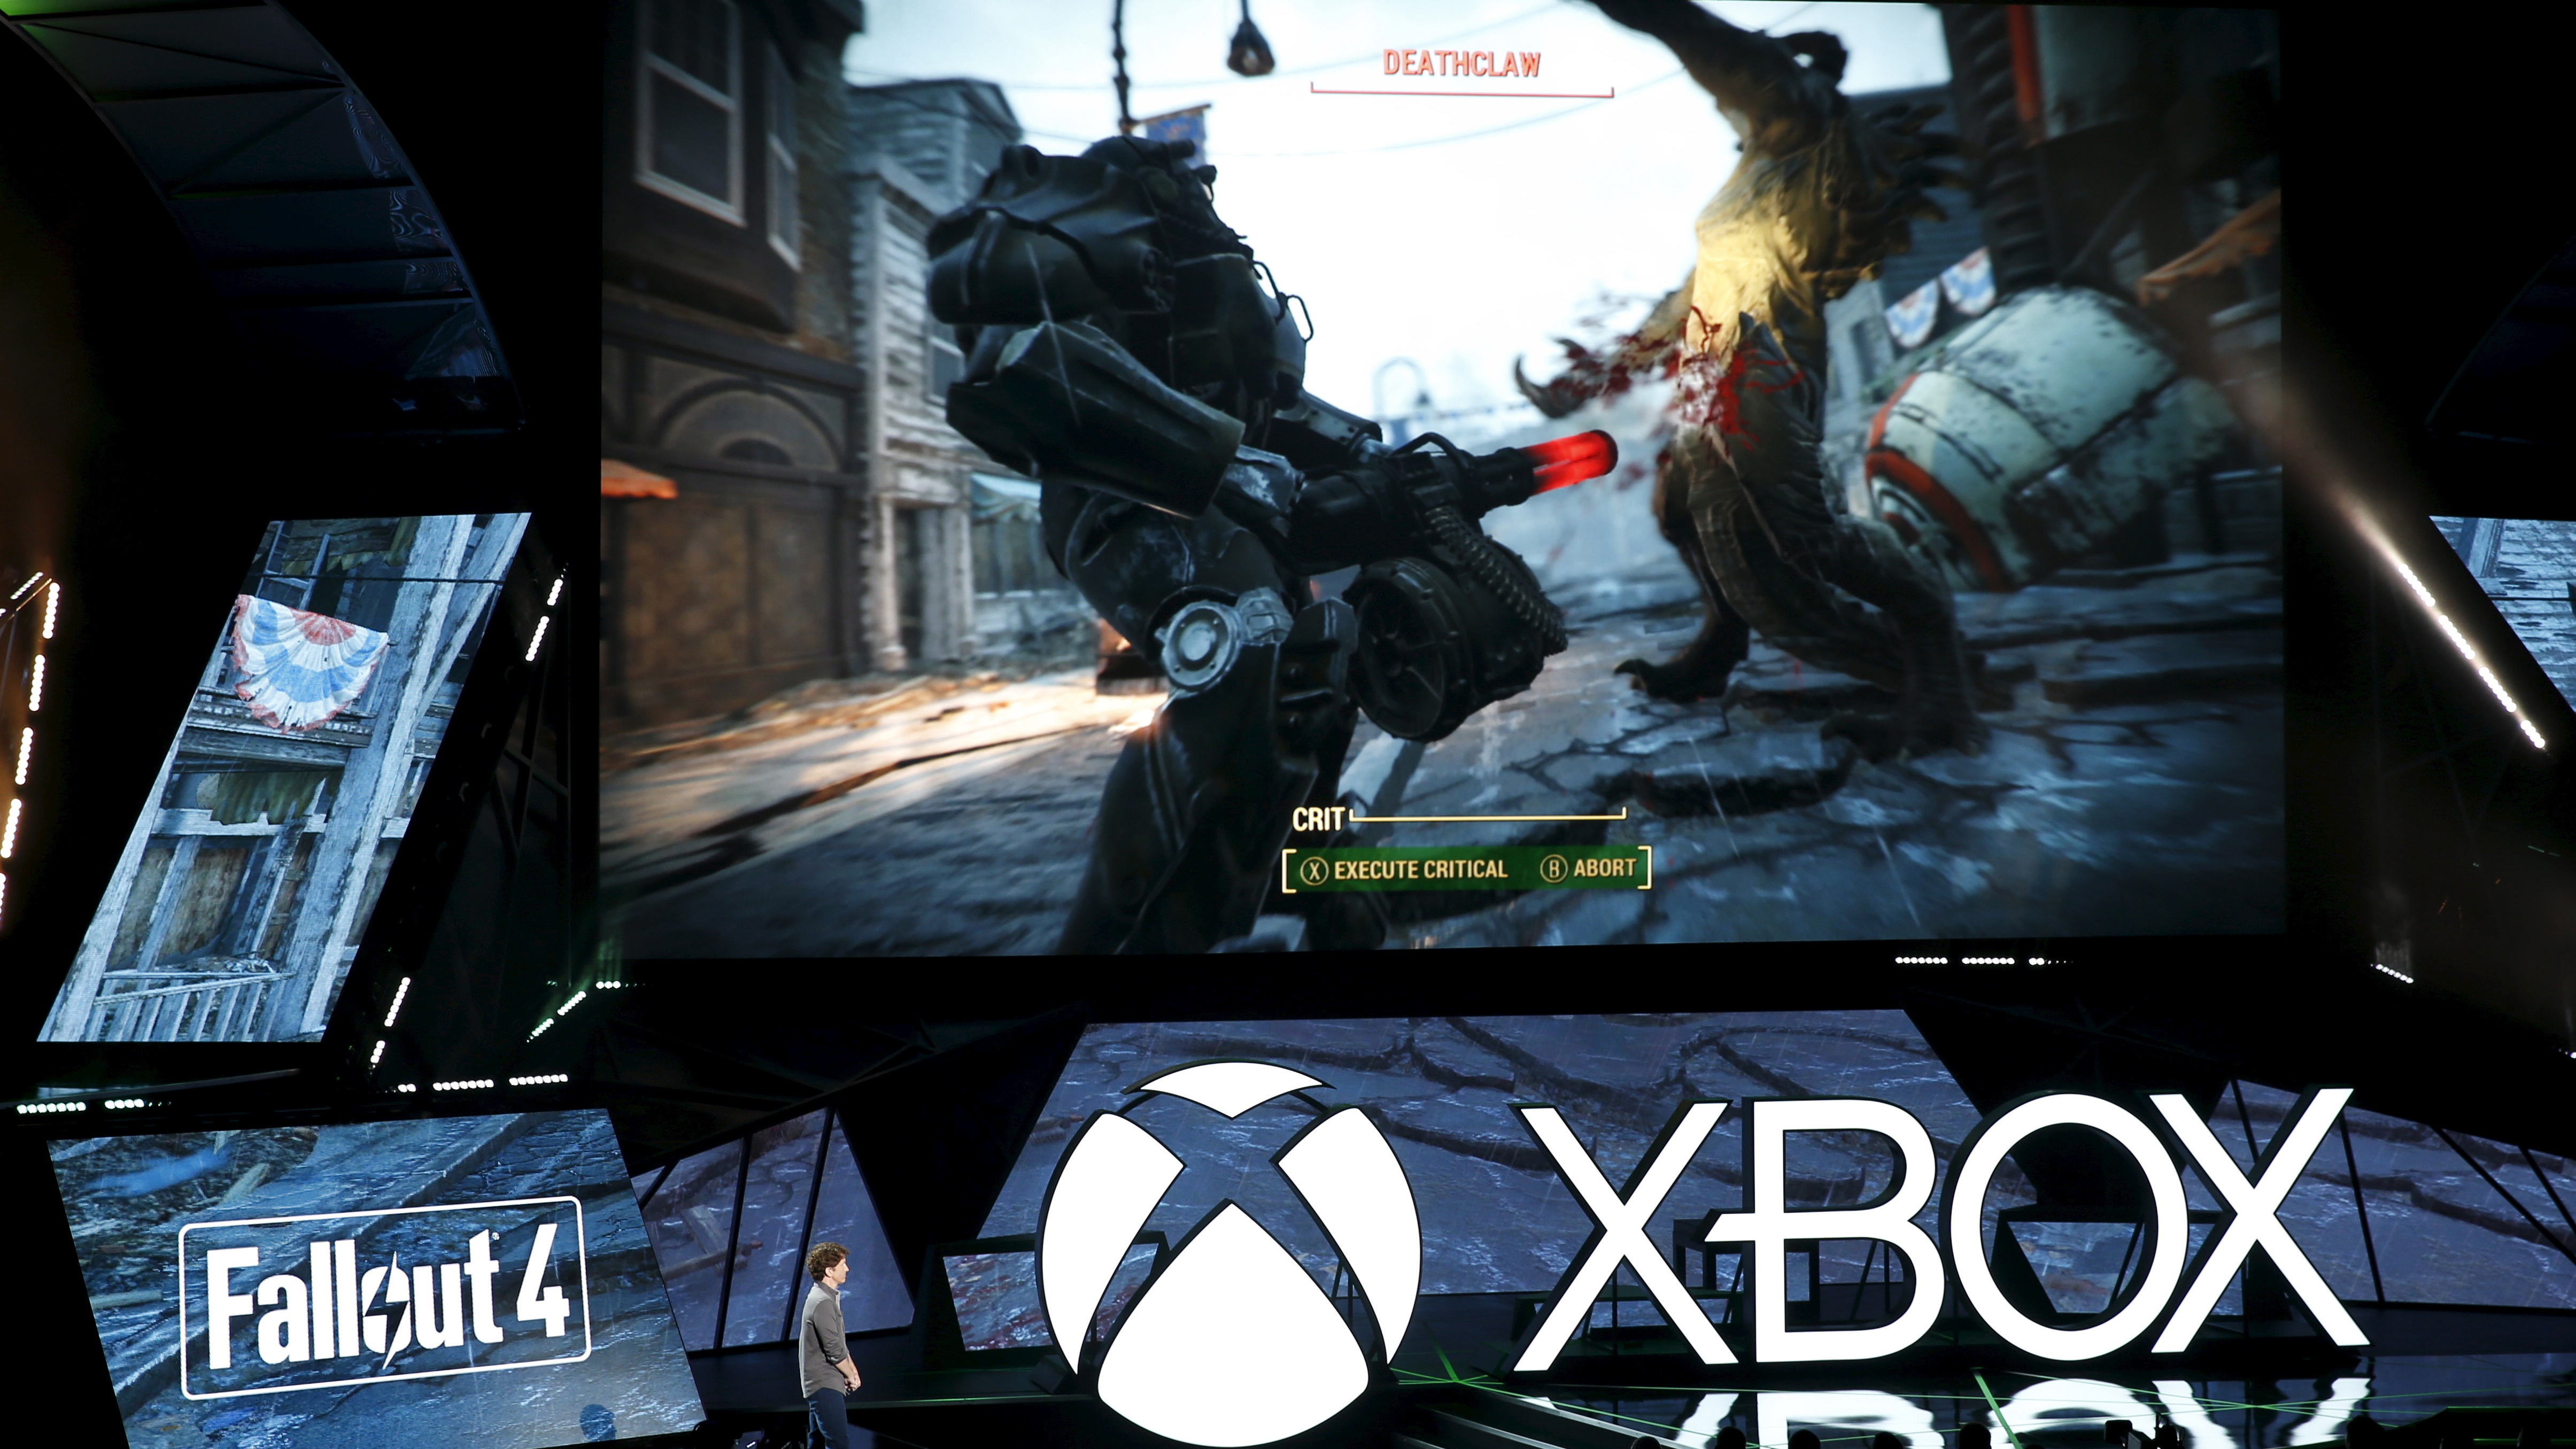 """Todd Howard of Bethesda Game Studios introduces the """"Fallout 4"""" video game during game publisher Microsoft's Xbox media briefing before the opening day of the Electronic Entertainment Expo, or E3, in Los Angeles, California, United States, June 15, 2015."""